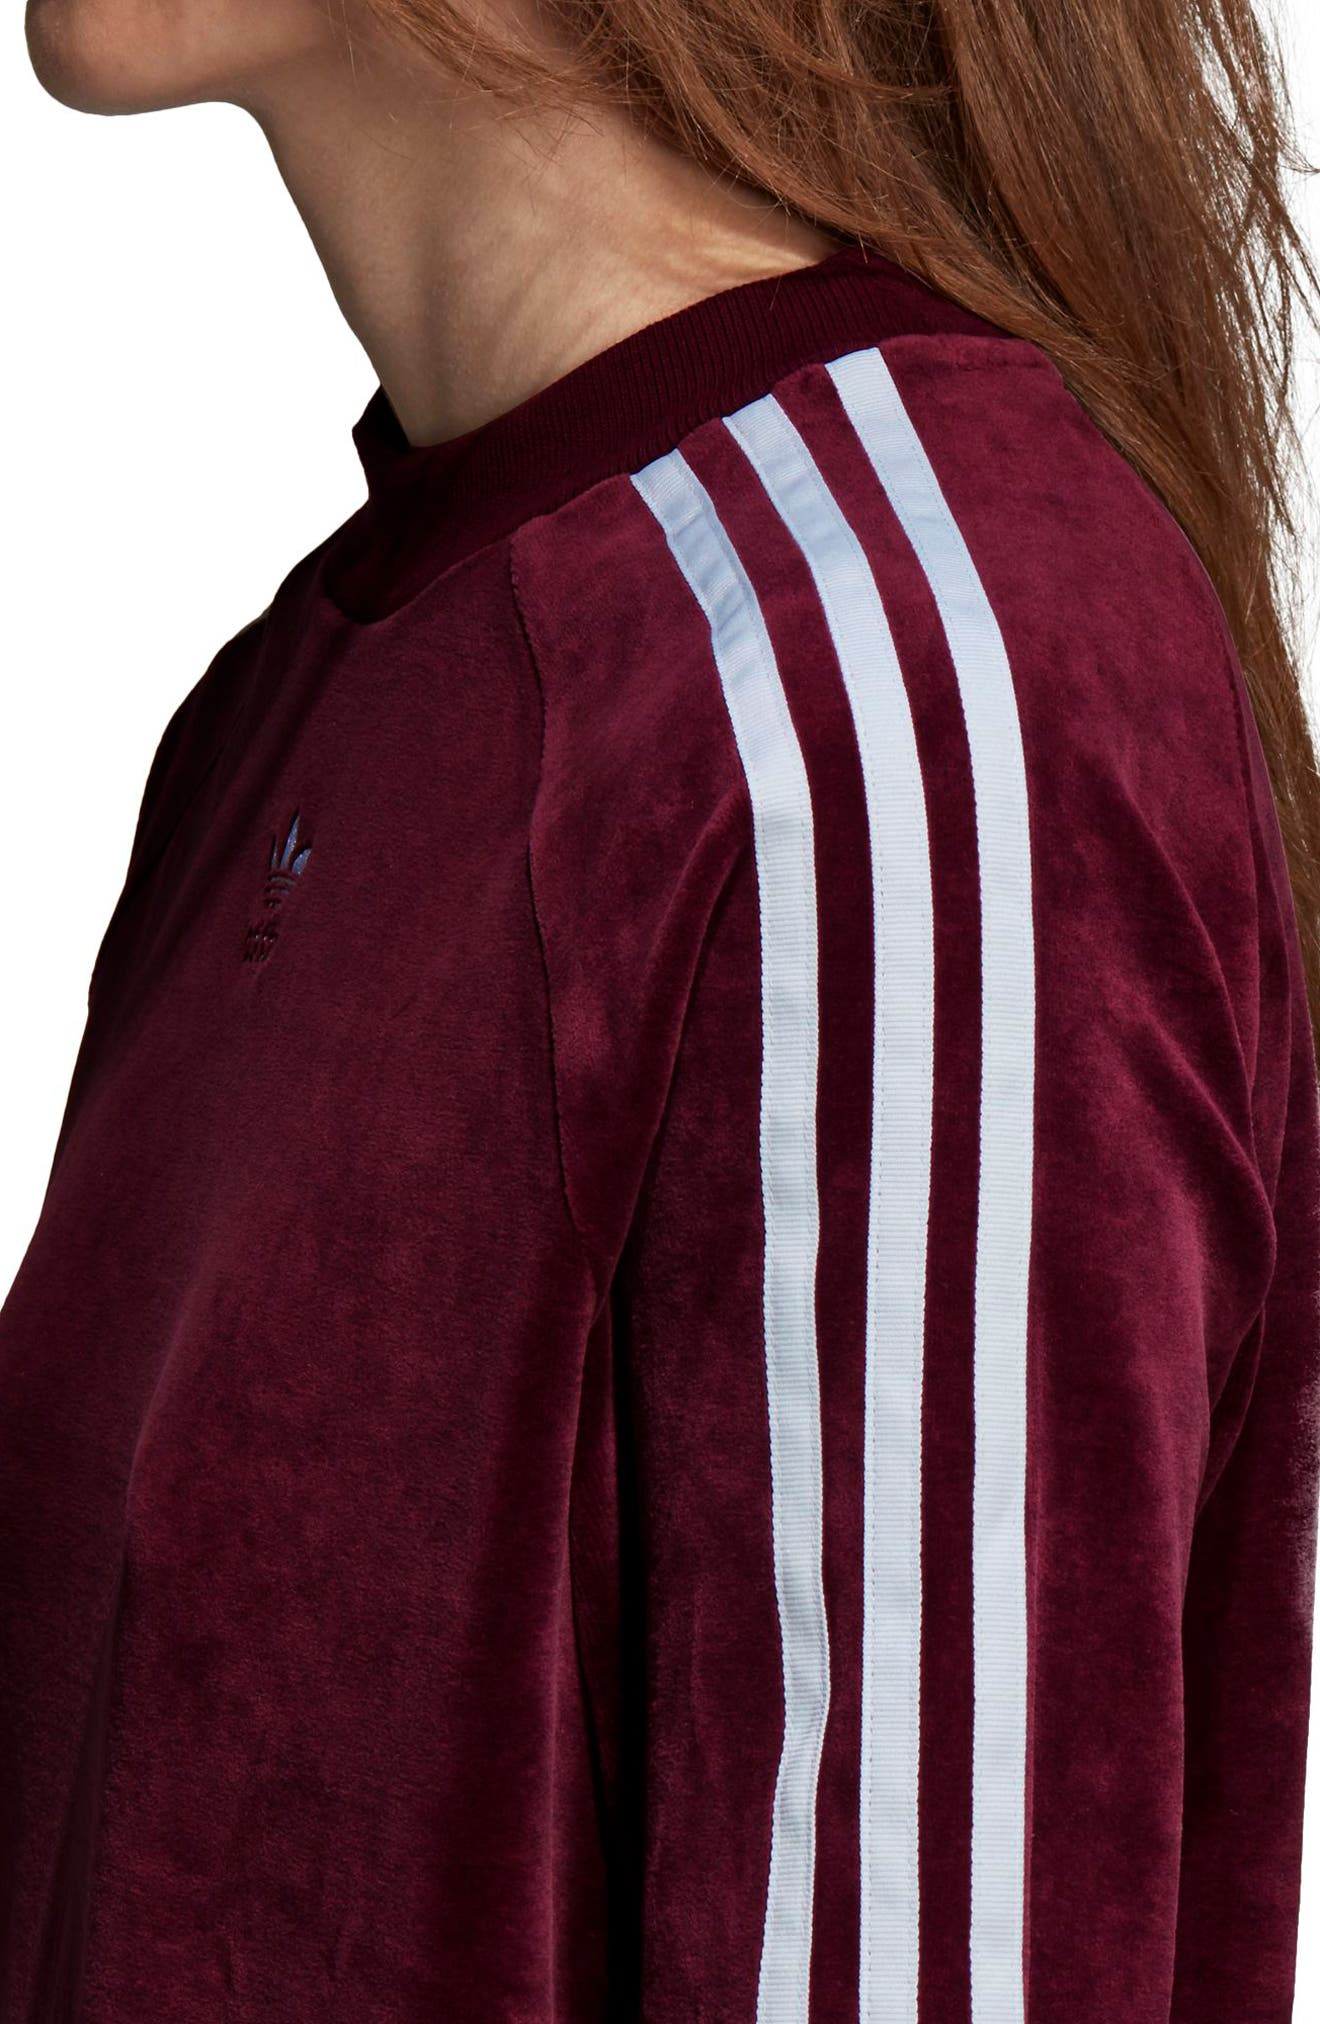 TRF Sweatshirt,                             Alternate thumbnail 8, color,                             MAROON